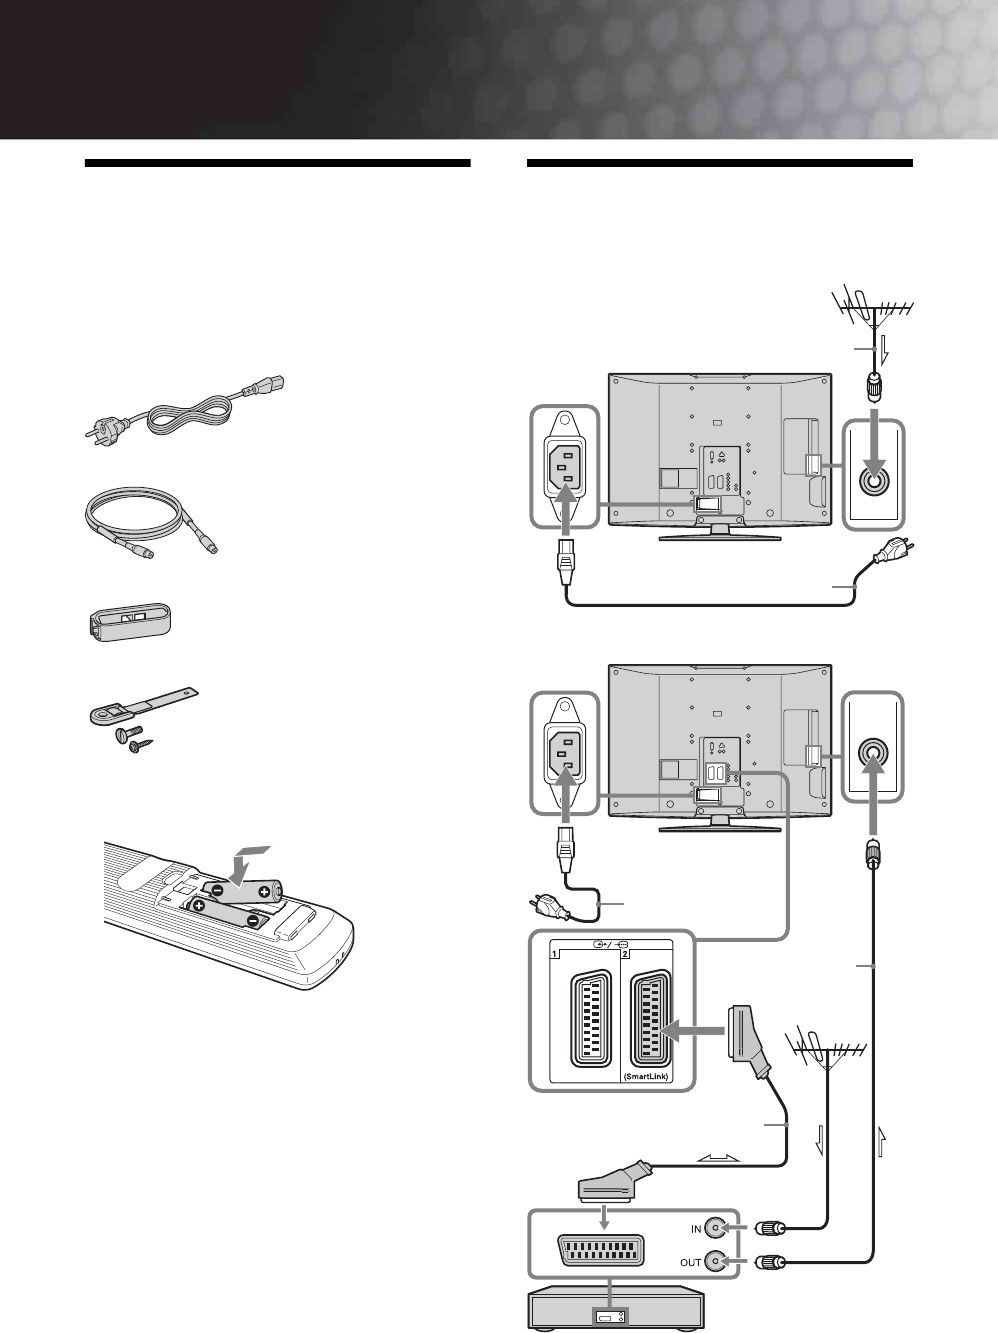 Page 4 of Sony Flat Panel Television KDL-40S2010 User